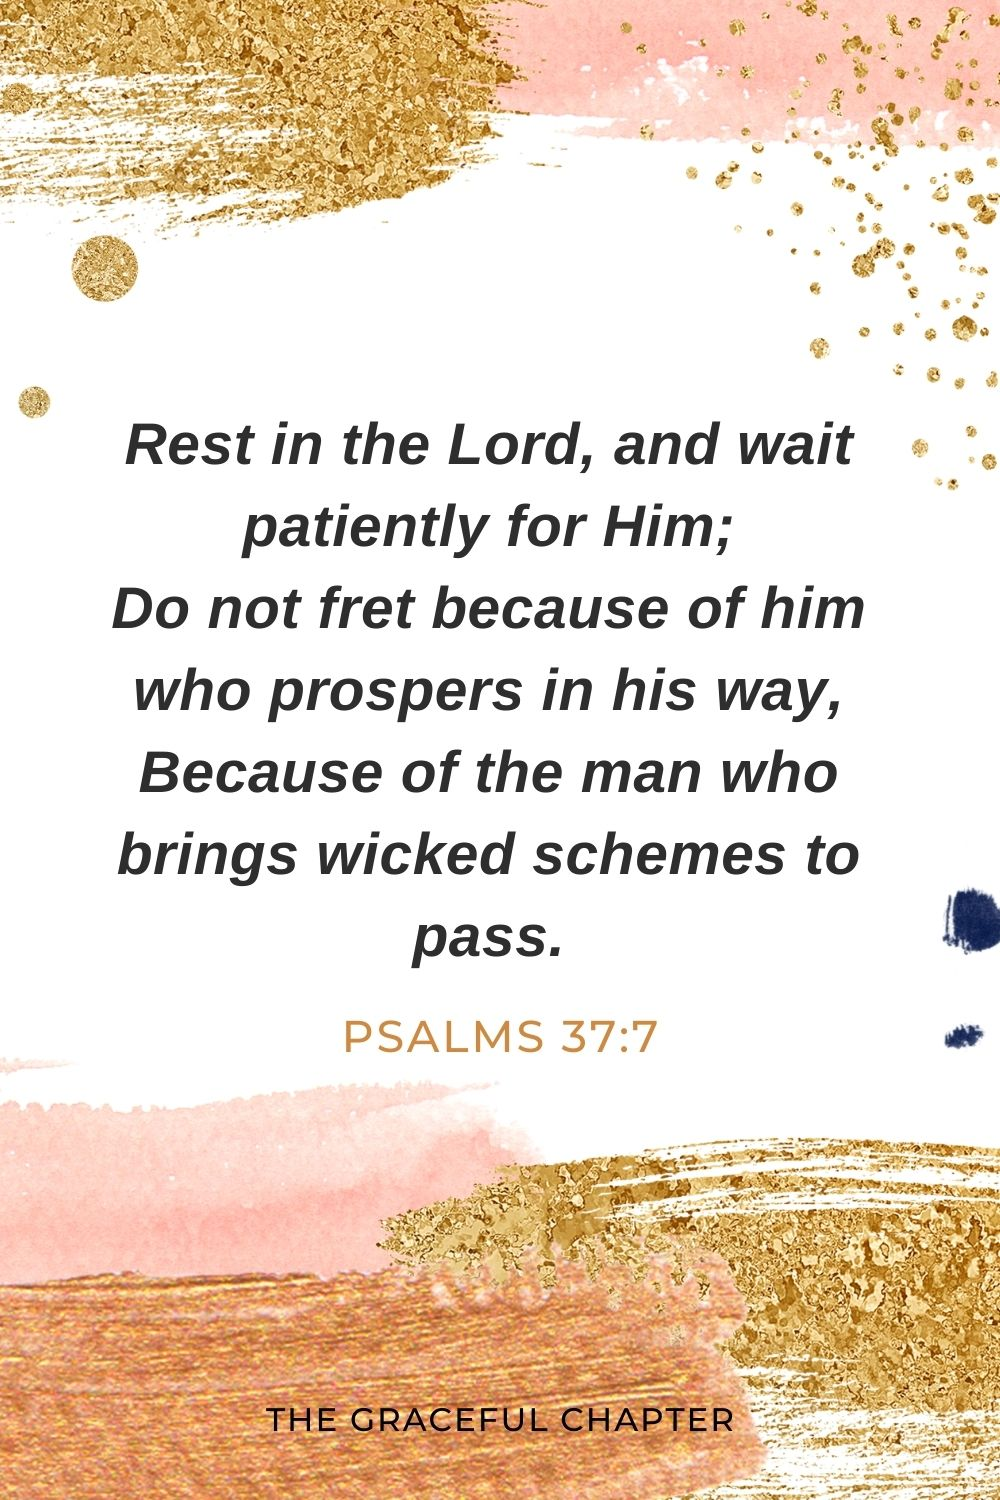 Rest in the Lord, and wait patiently for Him; Do not fret because of him who prospers in his way, Because of the man who brings wicked schemes to pass. Psalms 37:7